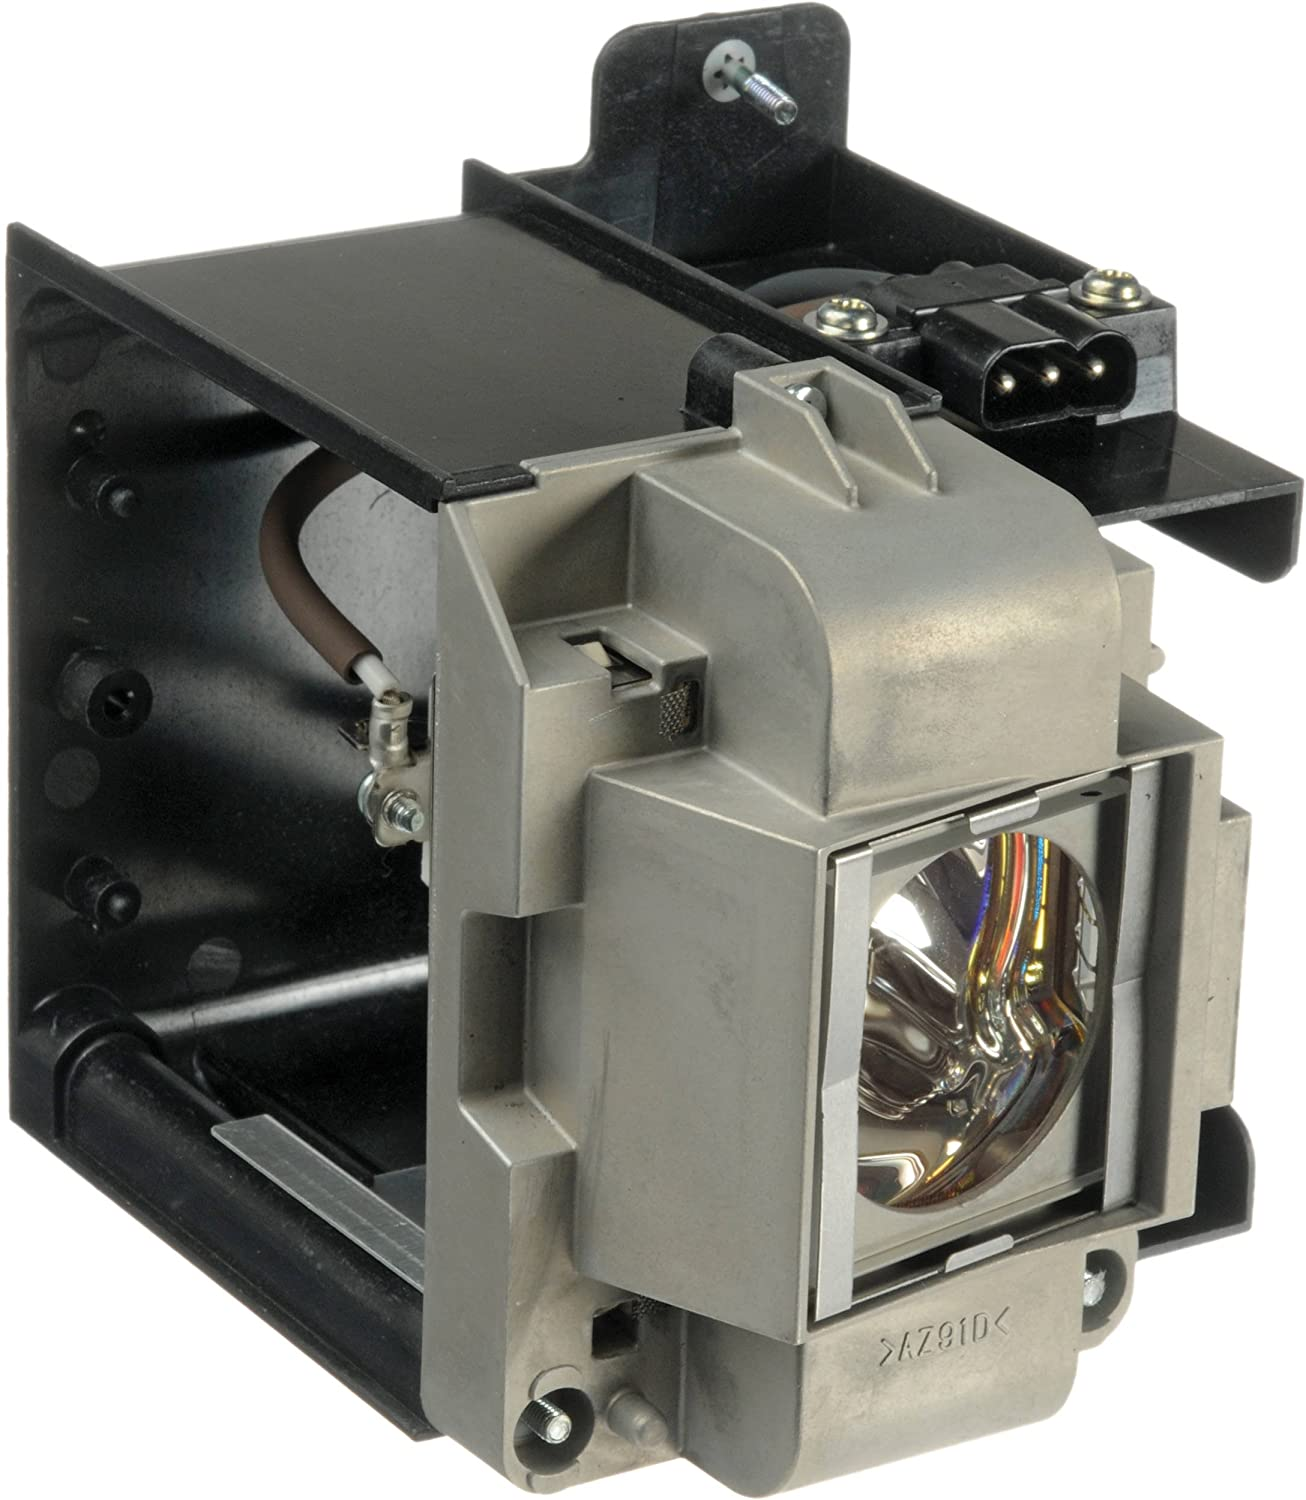 Amazing Lamps VLT-XD3200LP Replacement Lamp in Housing for Mitsubishi Projectors